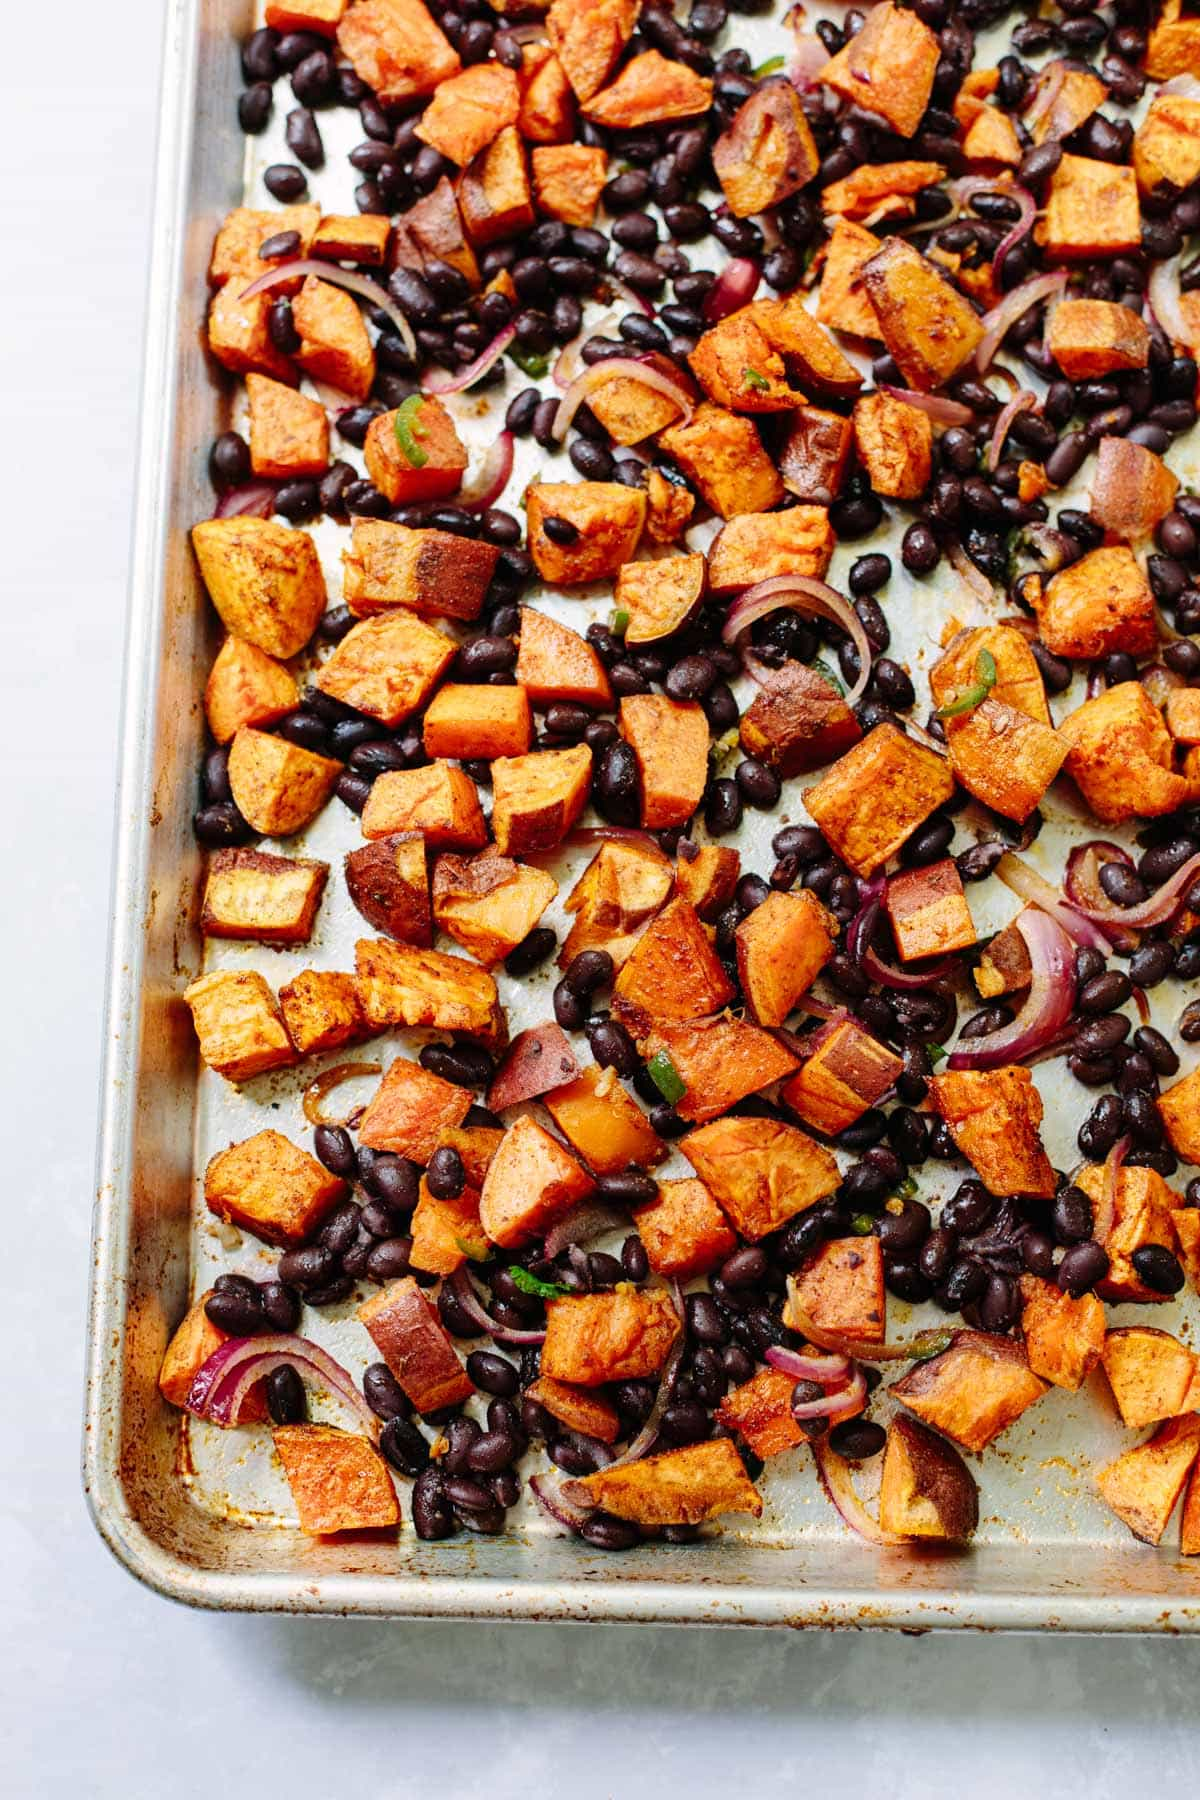 Spicy Roasted Sweet Potato Salad with Black Beans